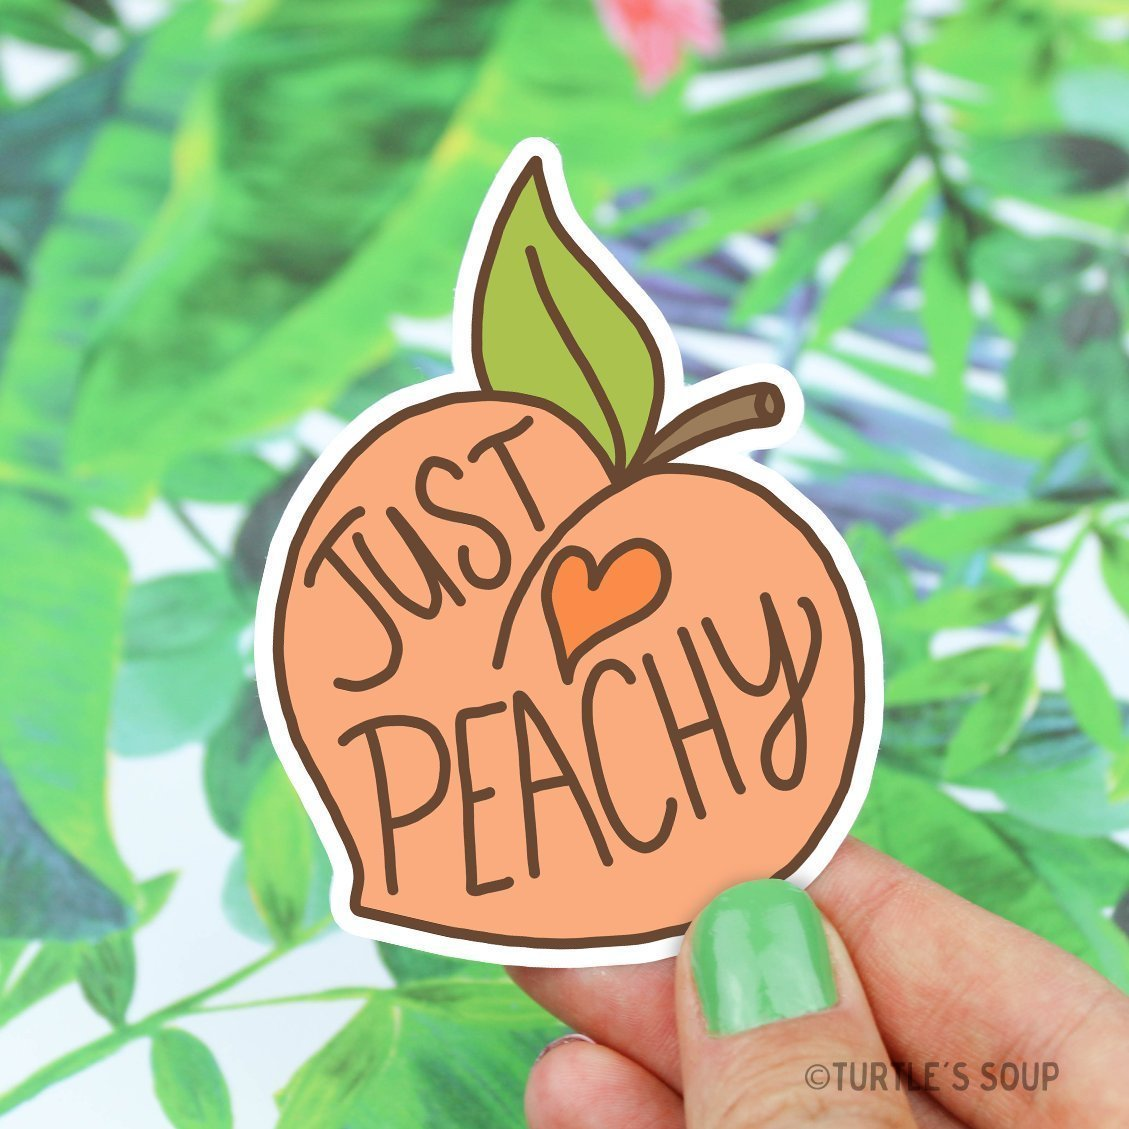 Peach Sticker, Just Peachy, Vinyl Stickers, Gift For Her, Southern Belle, Cute Stickers, Laptop Decal, Water Bottle Sticker, Gifts Under 5